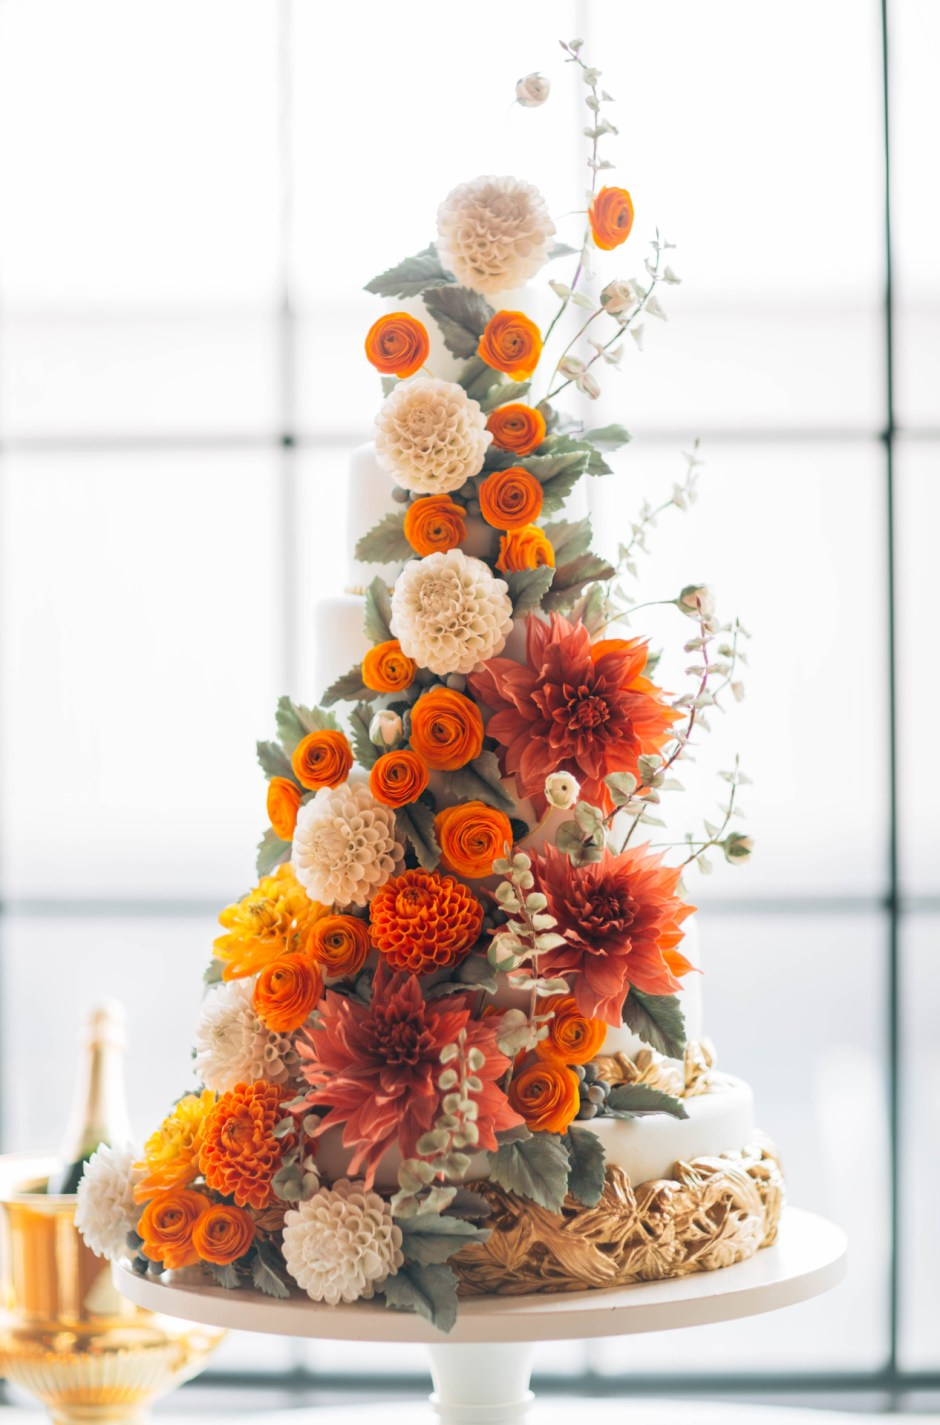 Fall Sugar Flower Wedding Cake I Mischief Maker Cakes #sugarflower #sugarflowerweddingcake #mischiefmakercakes #themischiefmaker #bemischievious #luxury #luxuryweddingcake  #luxurywedding